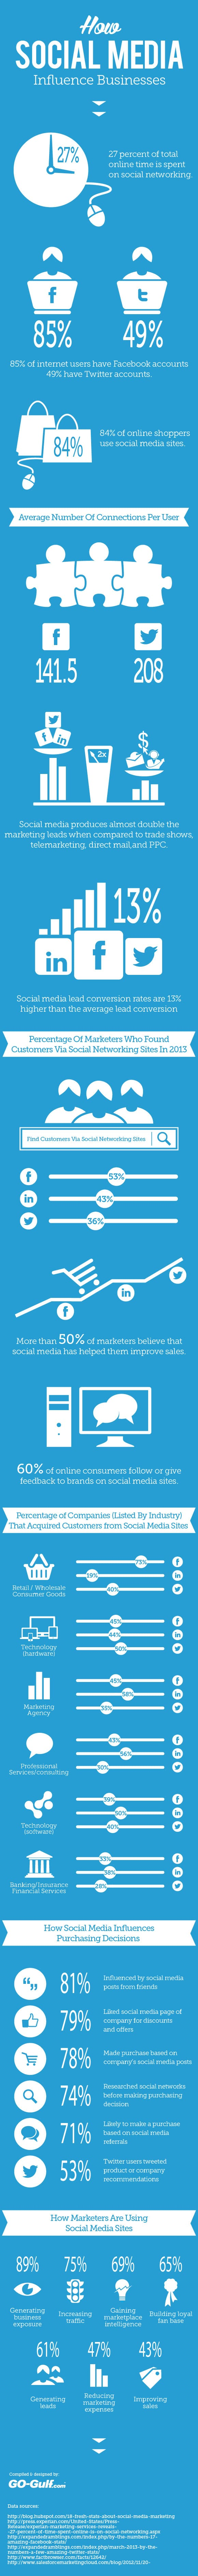 business-social-media-influence-infographic